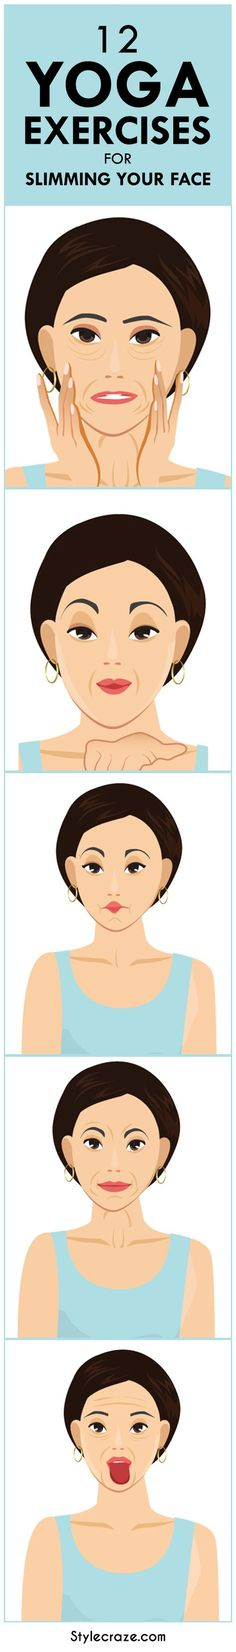 Most of us are so worried about the fat in our body that we forget to notice the fat in our face. Here are 12 effective exercises in yoga… http://www.stylecraze.com/articles/10-yoga-exercises-for-slimming-your-face/